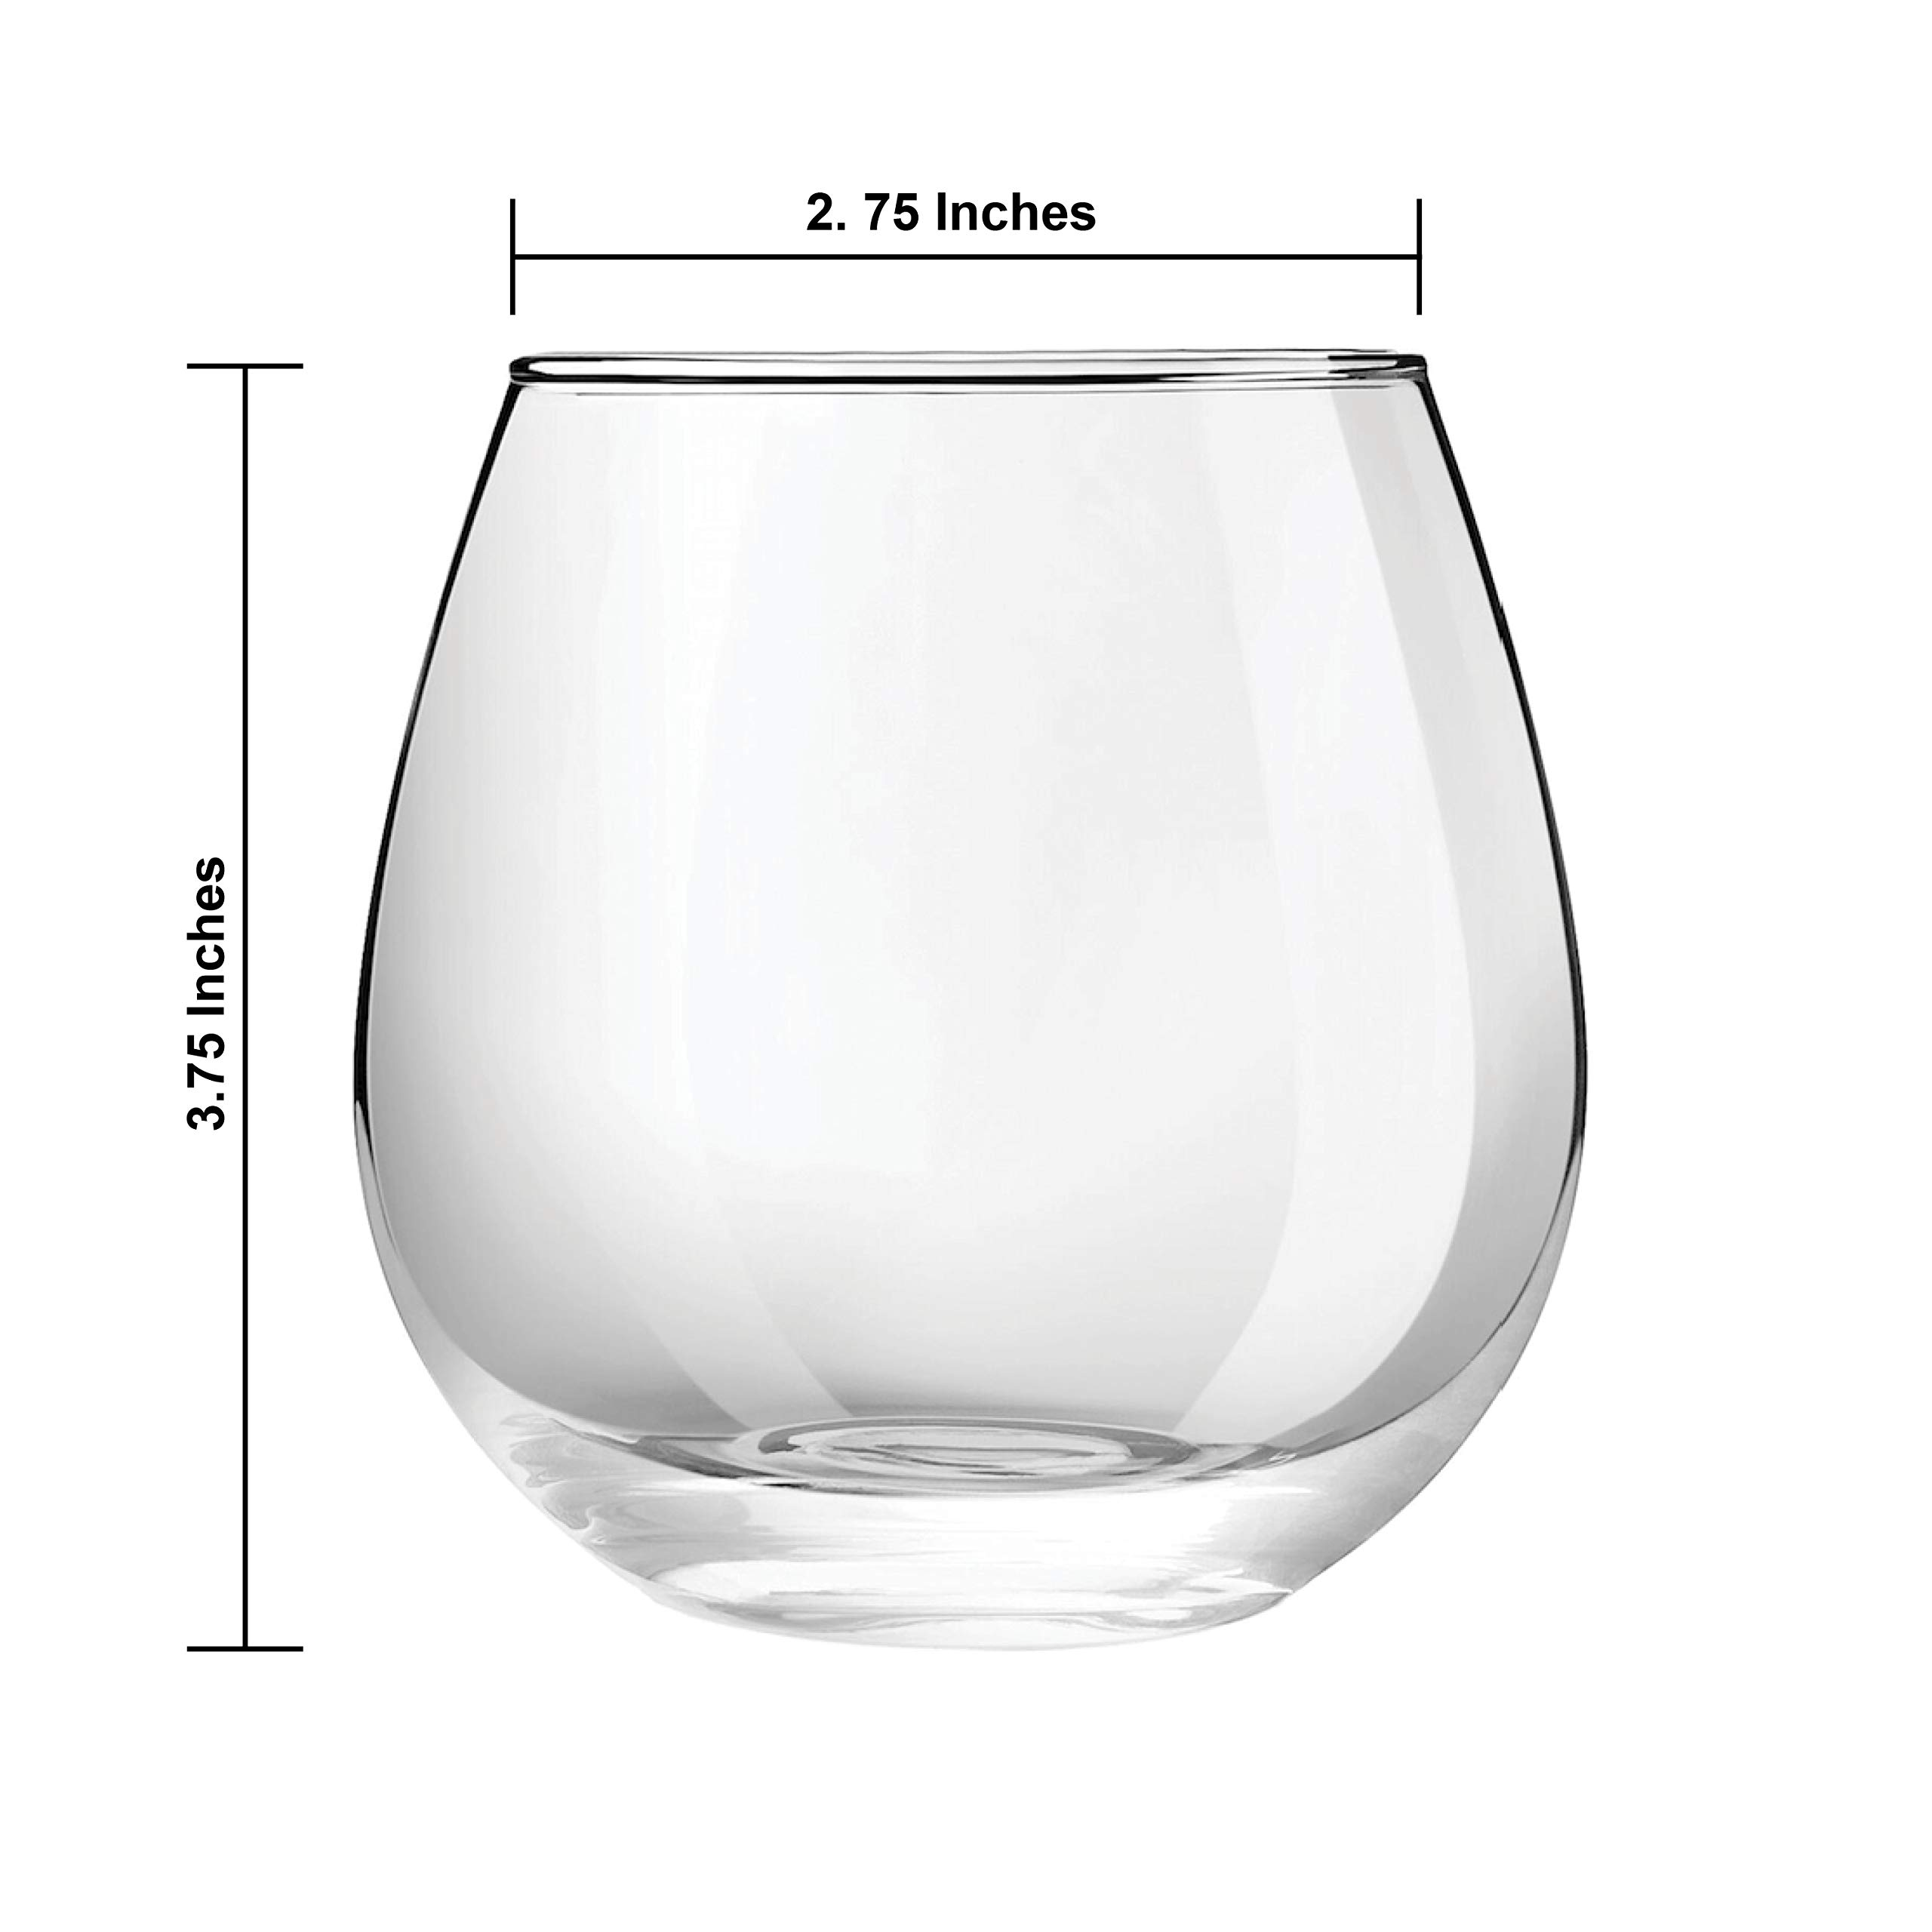 JoyJolt Spirits Stemless Wine Glasses 15 Ounce, Set of 4 Great For White Or Red Wine Mother's Day Wine Gifts Wines Glass Sets by JoyJolt (Image #2)